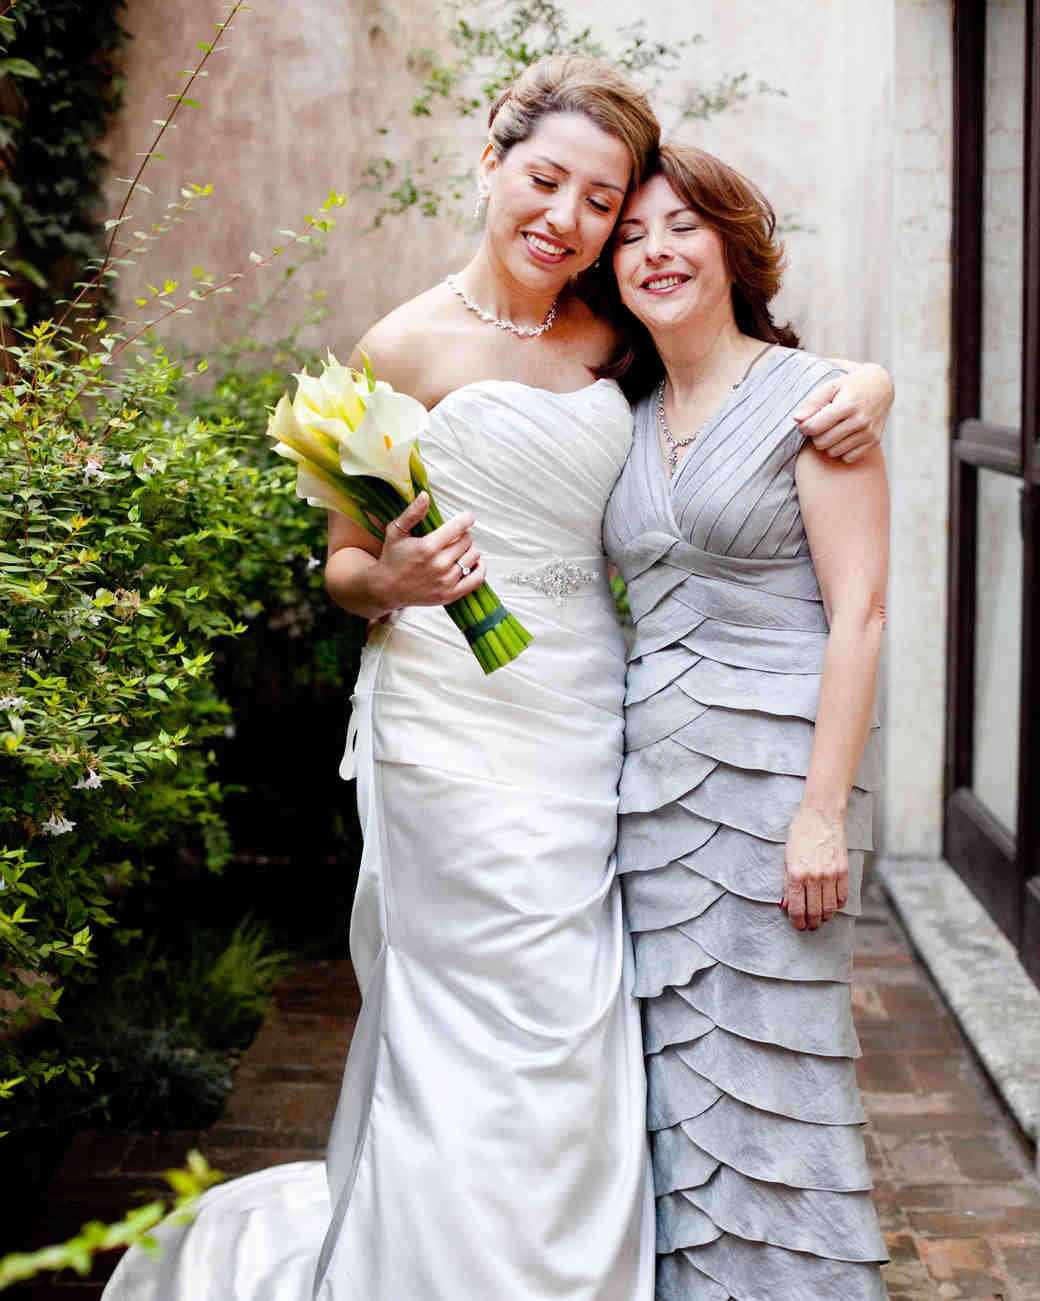 A Bride Embracing Her Mother